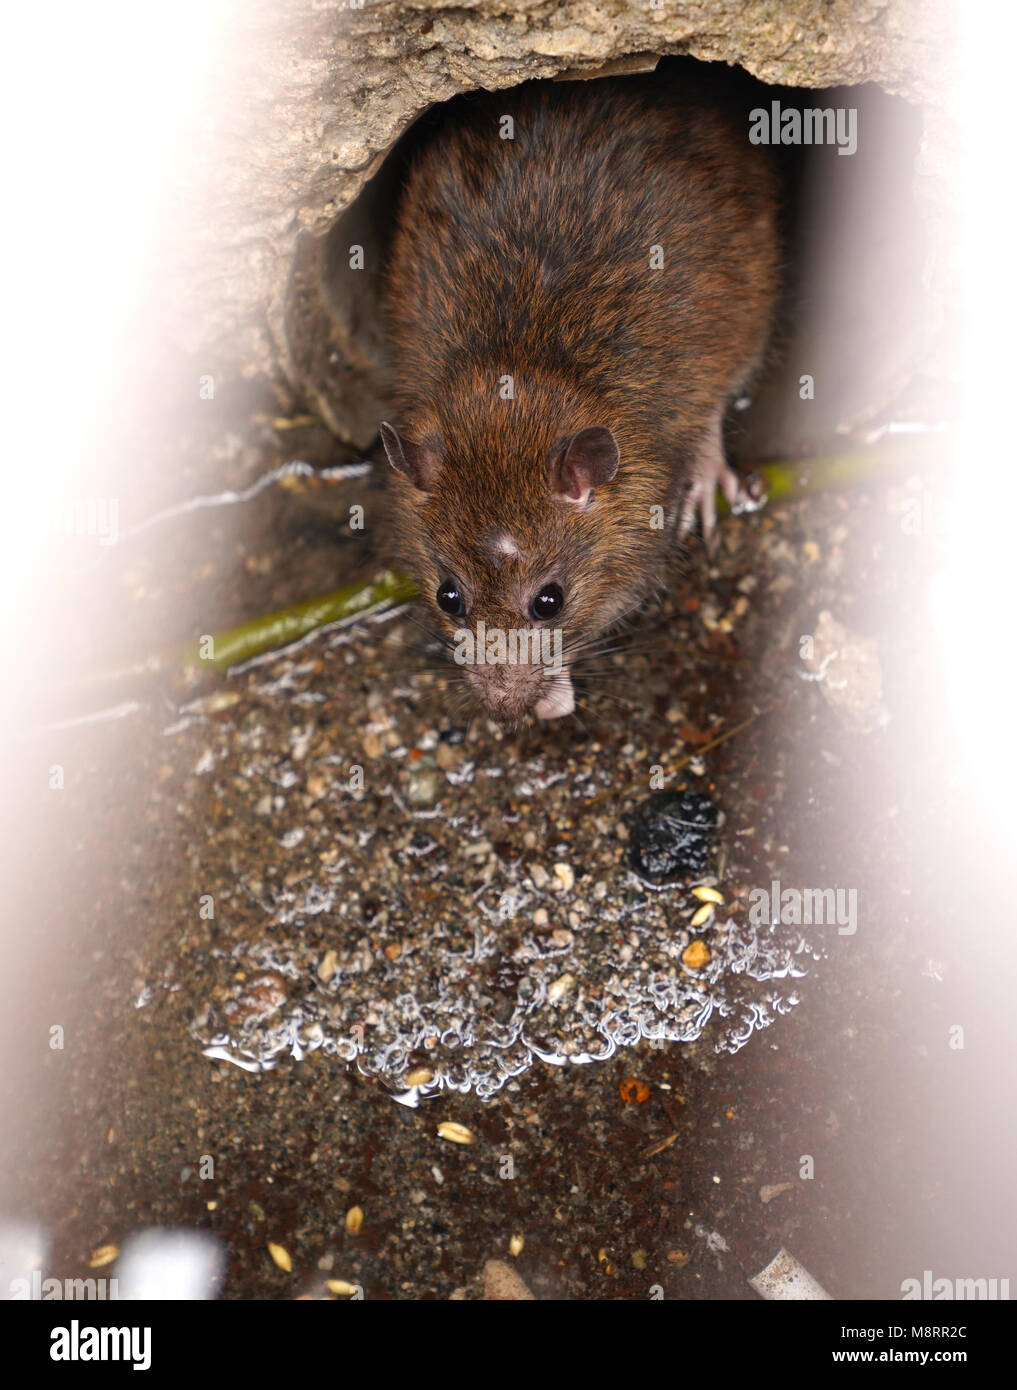 Rat on a sewer could bee seen from drain grate - Stock Image